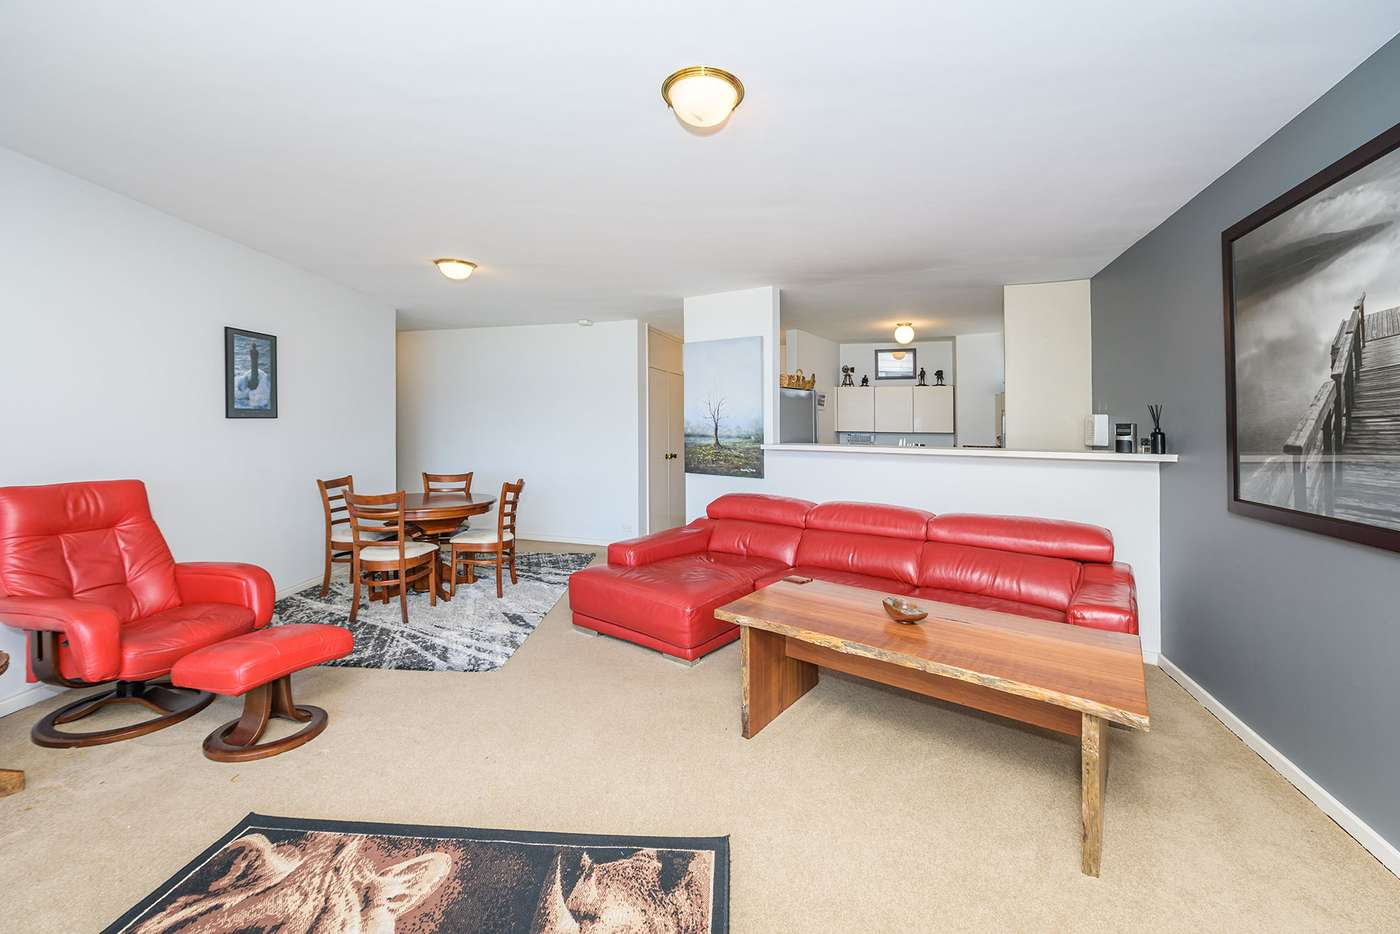 Seventh view of Homely apartment listing, 9/43 South Perth Esplanade, South Perth WA 6151